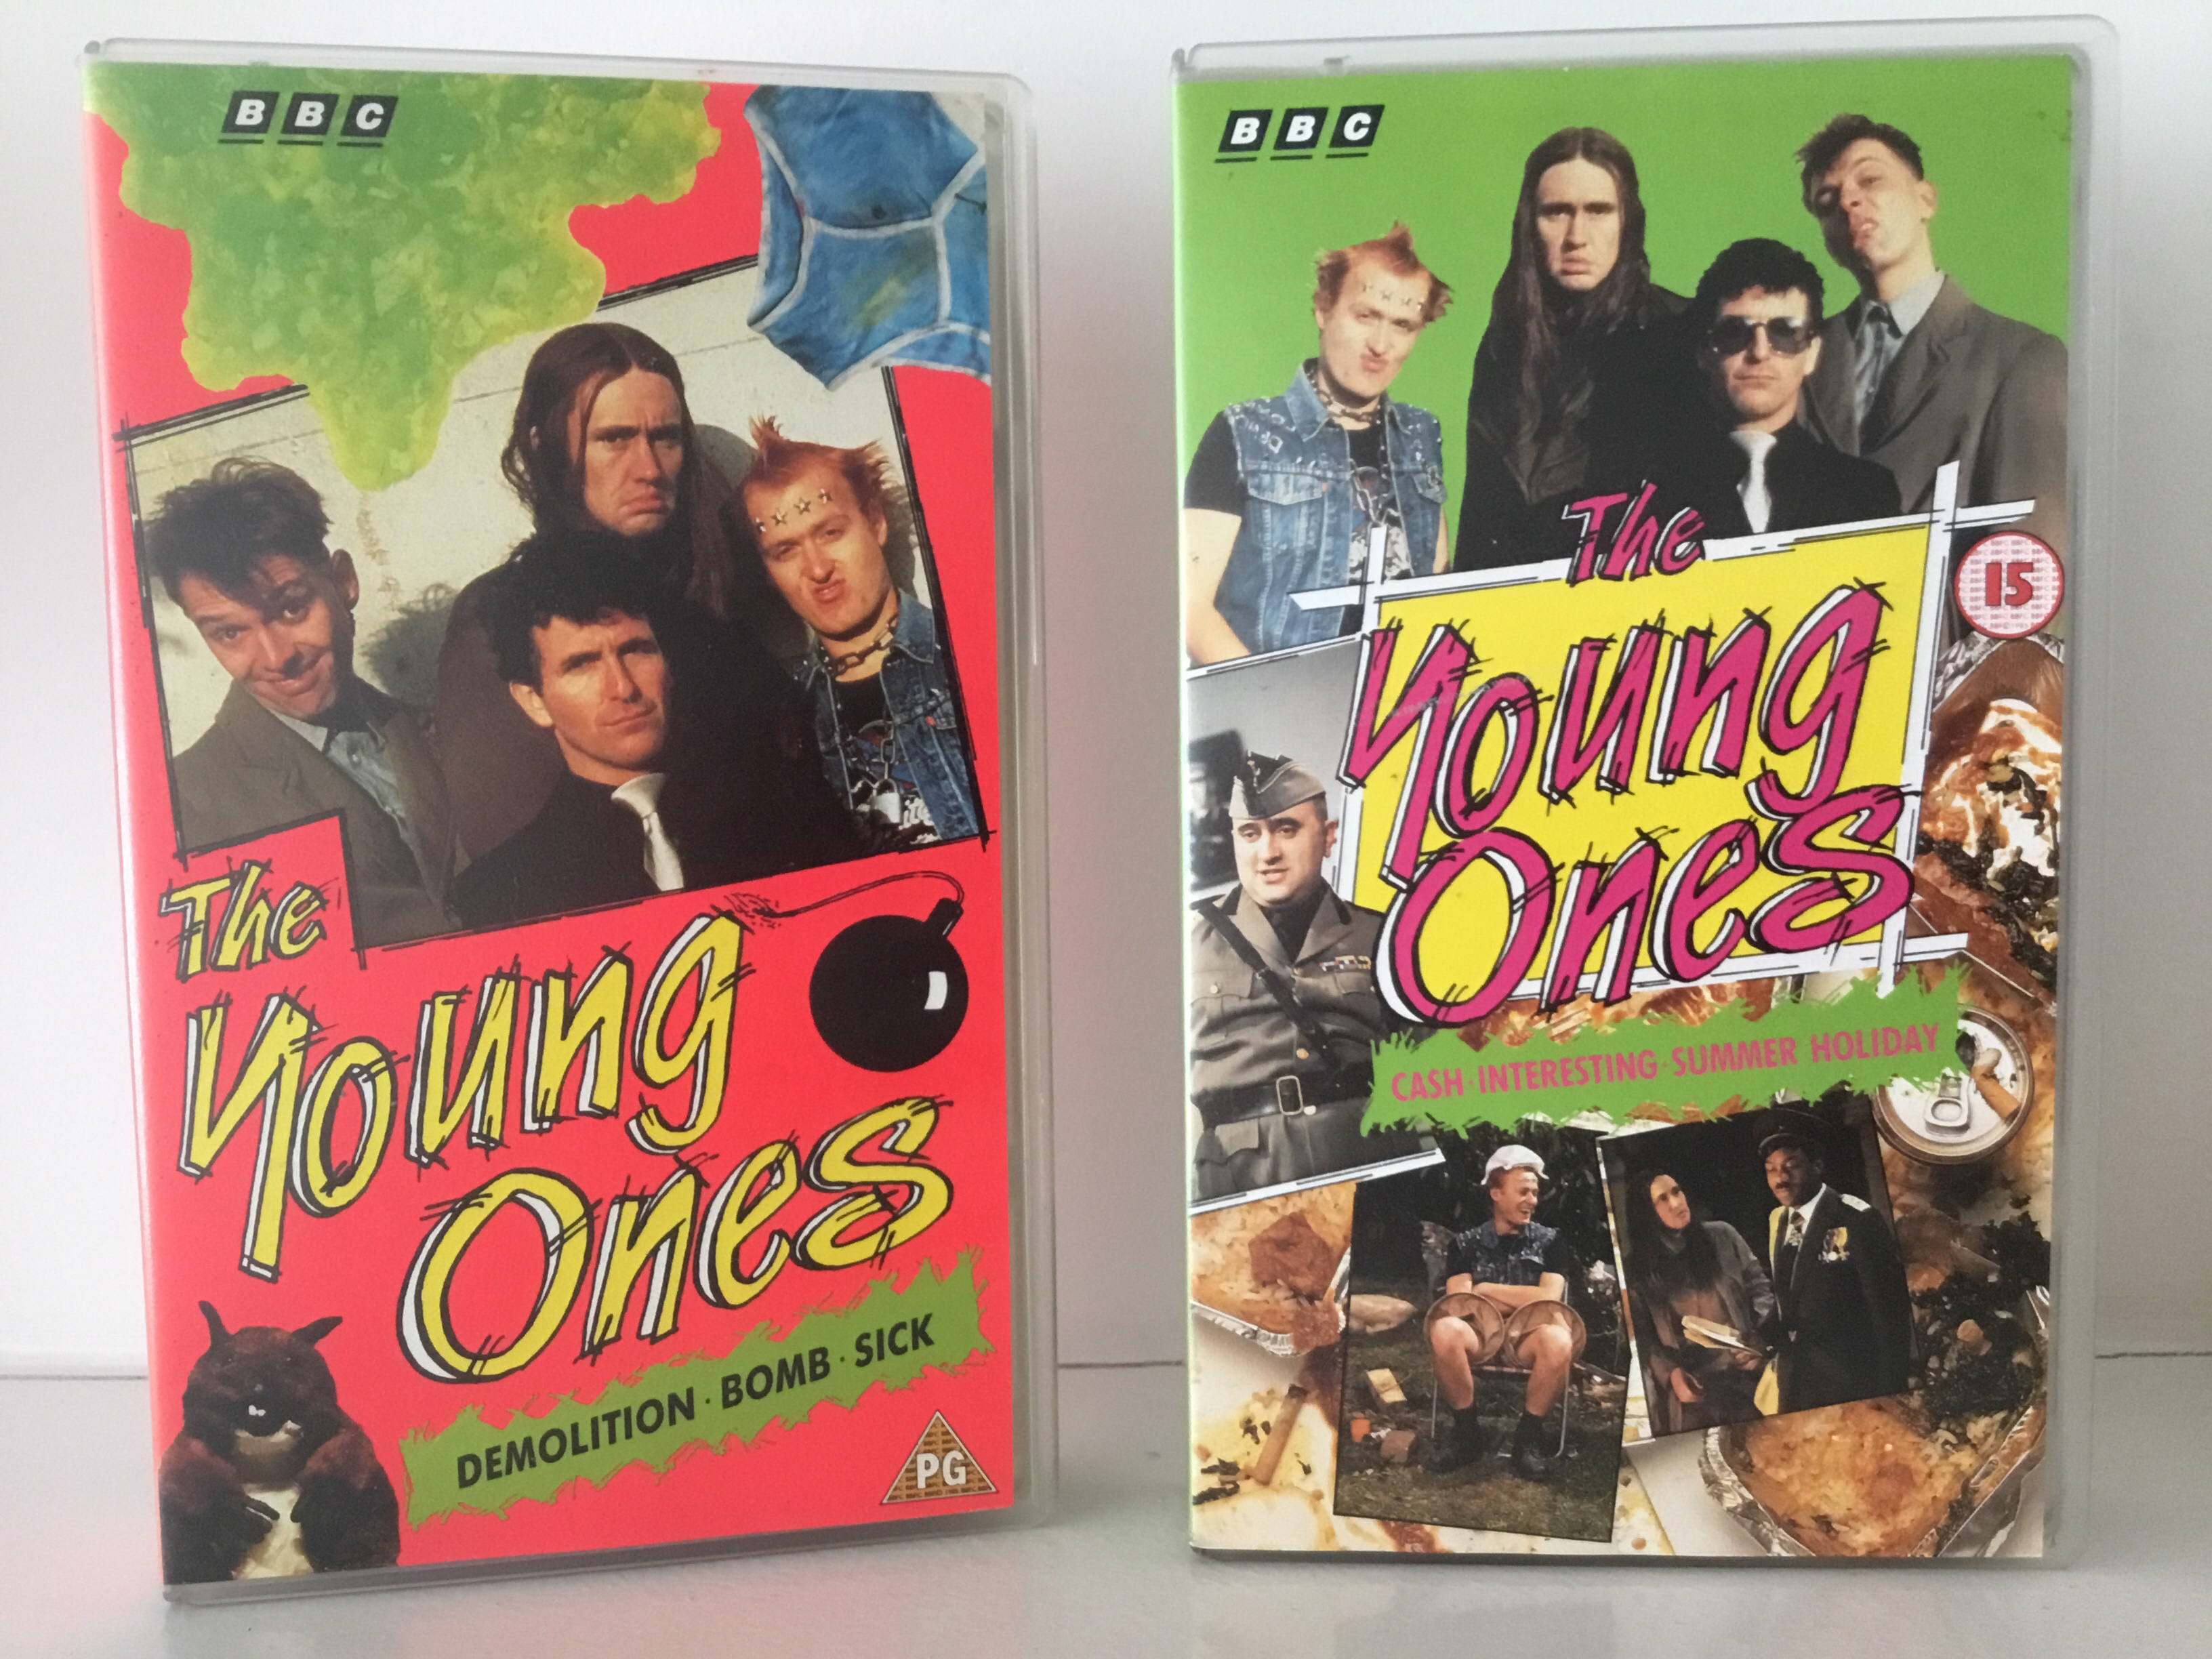 1991 released VHS tapes of the young ones